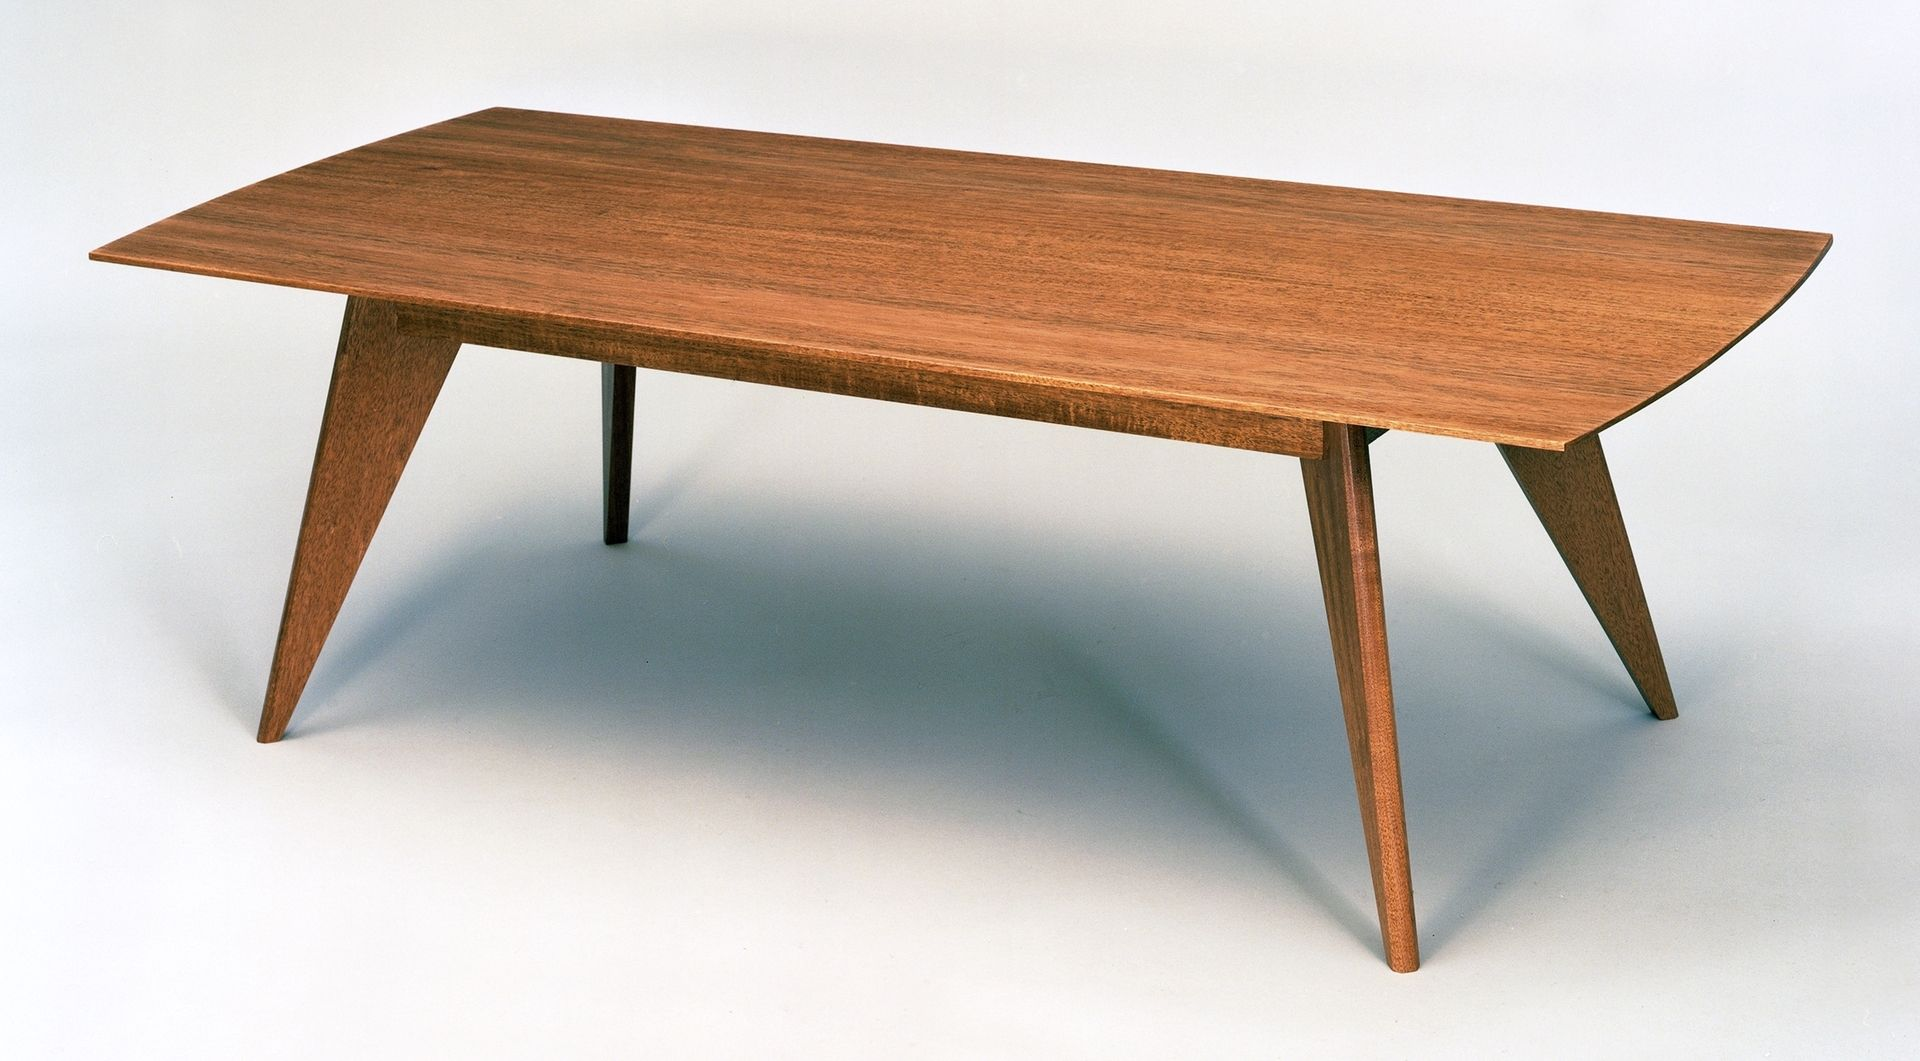 Hand Crafted Modern Coffee Table In Mahogany by MTTHRMN Fine